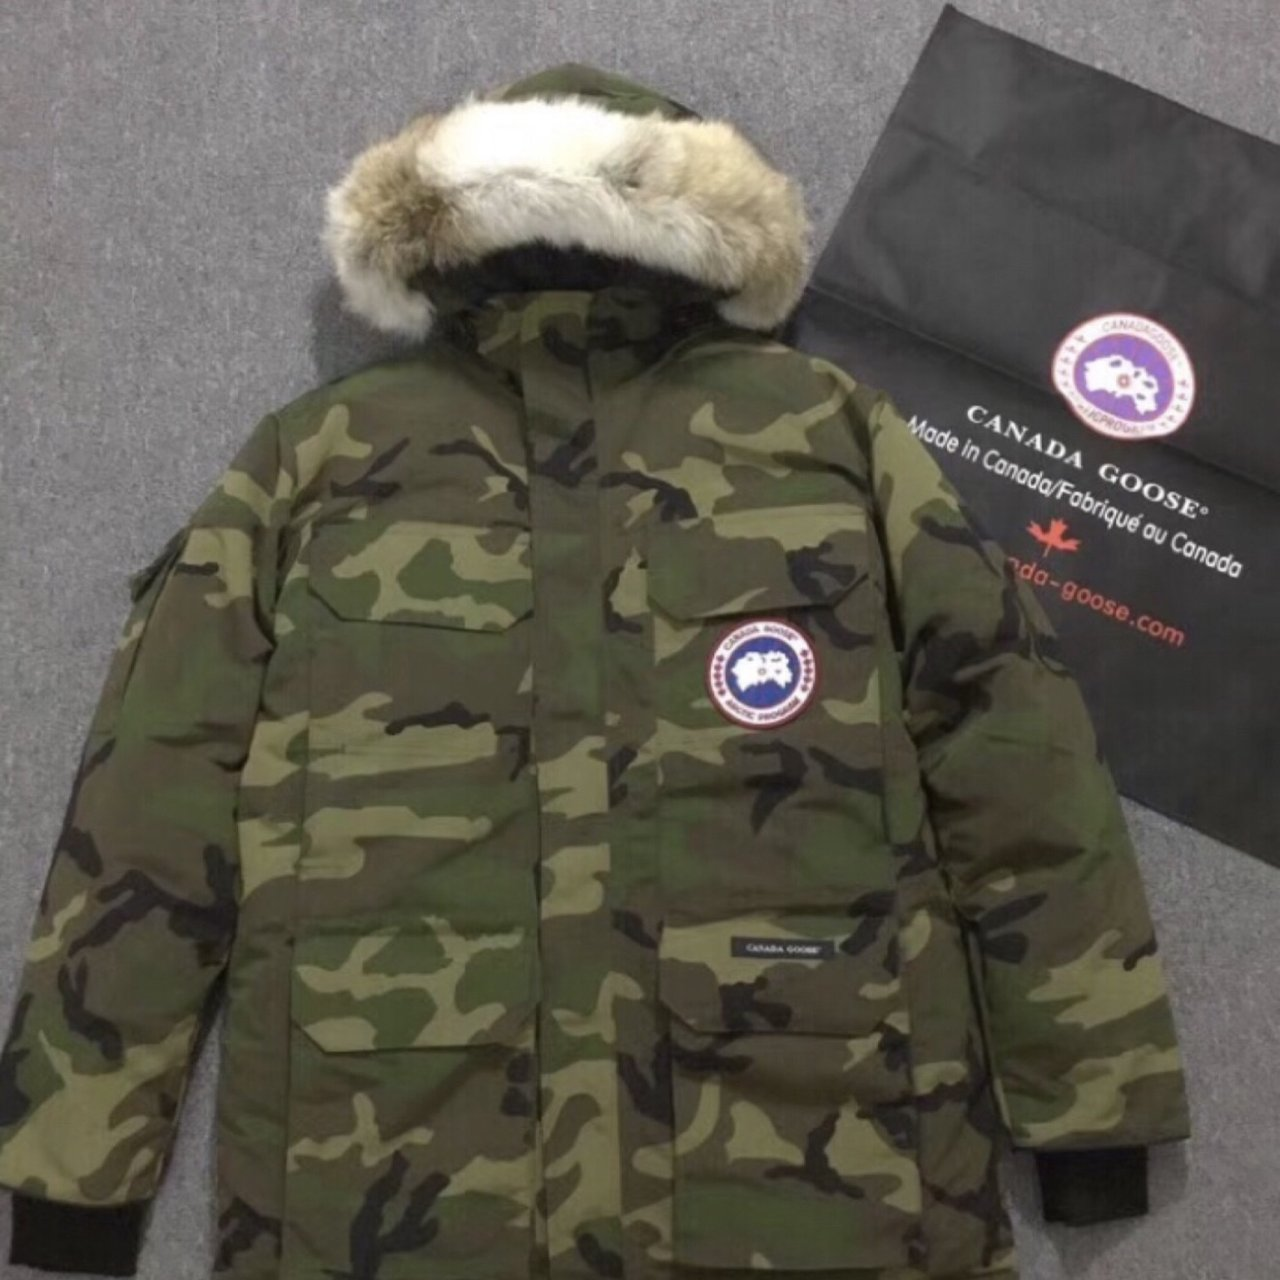 s eves. 2 months ago. United States. Men s Canada Goose Jacket. Used b184d79f6a05